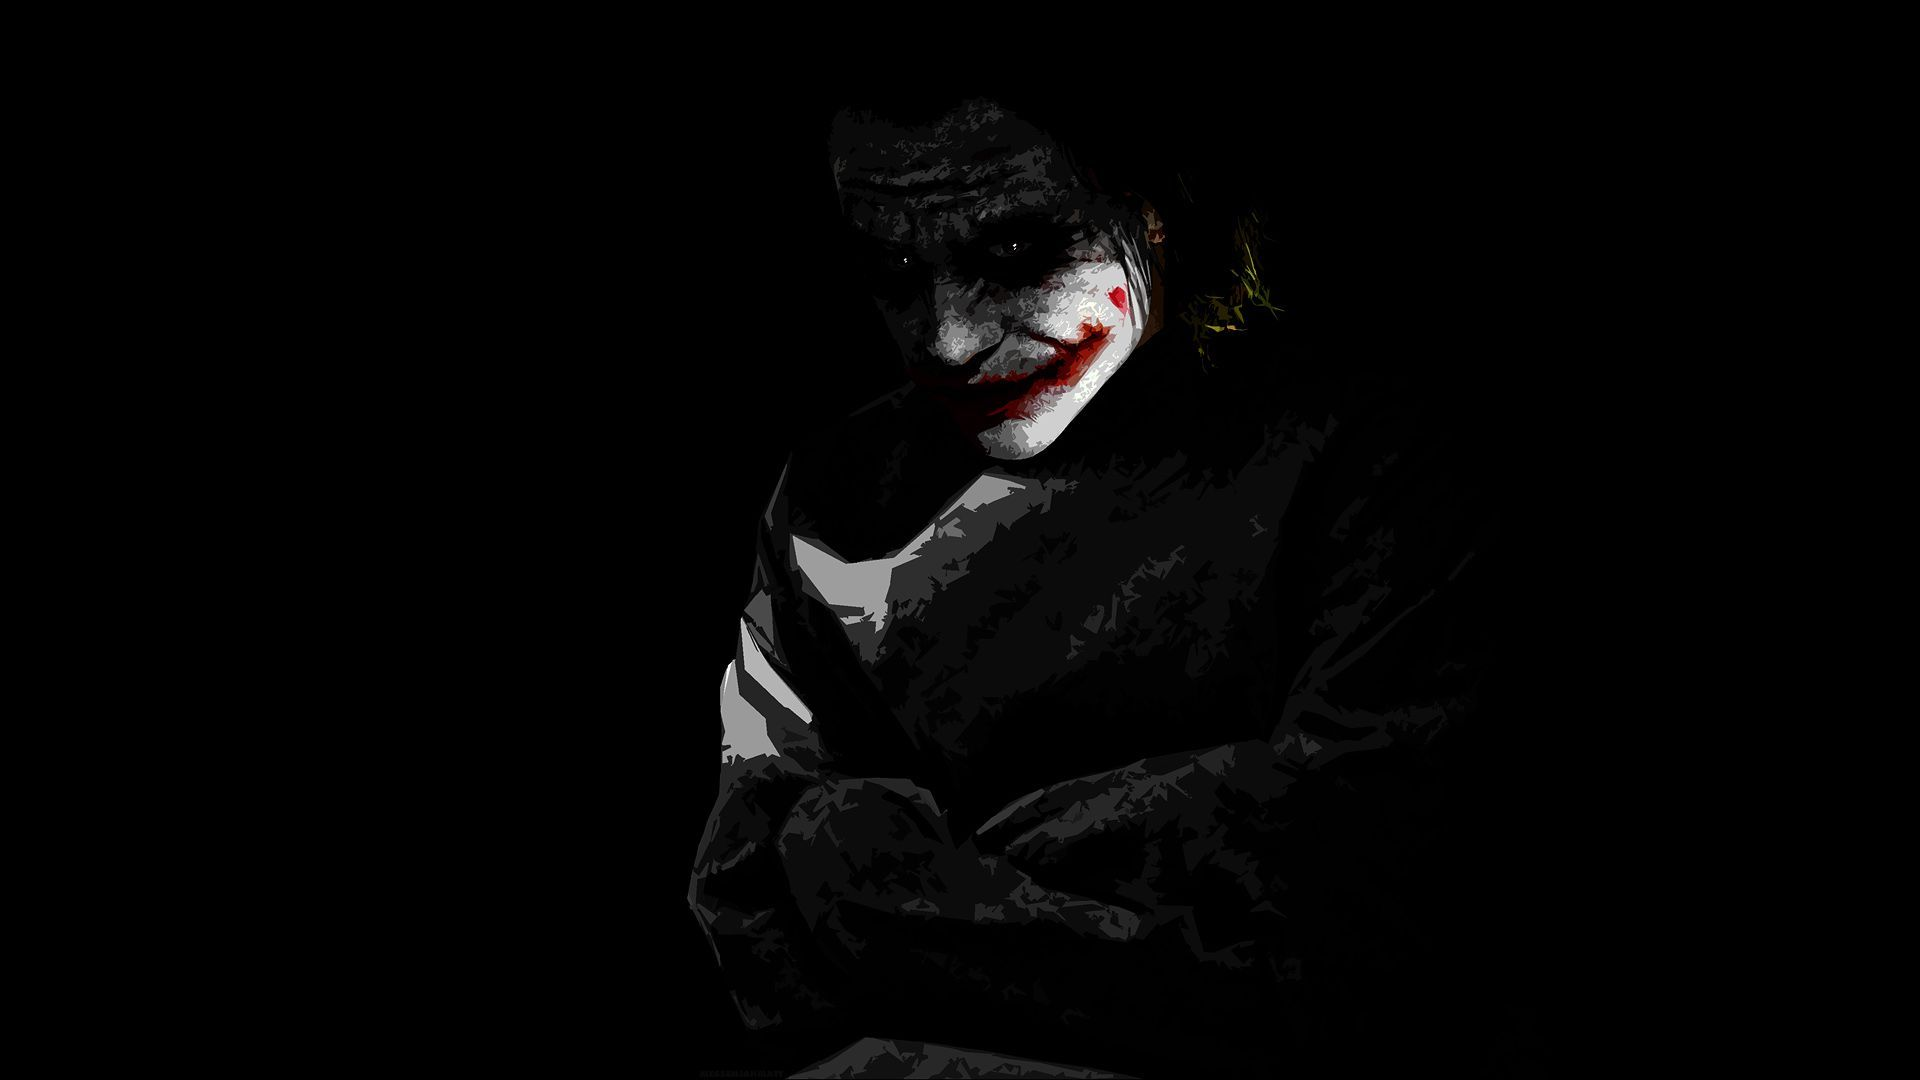 Image For Joker Hd Wallpapers 1080p Wallpaper Pinterest Joker